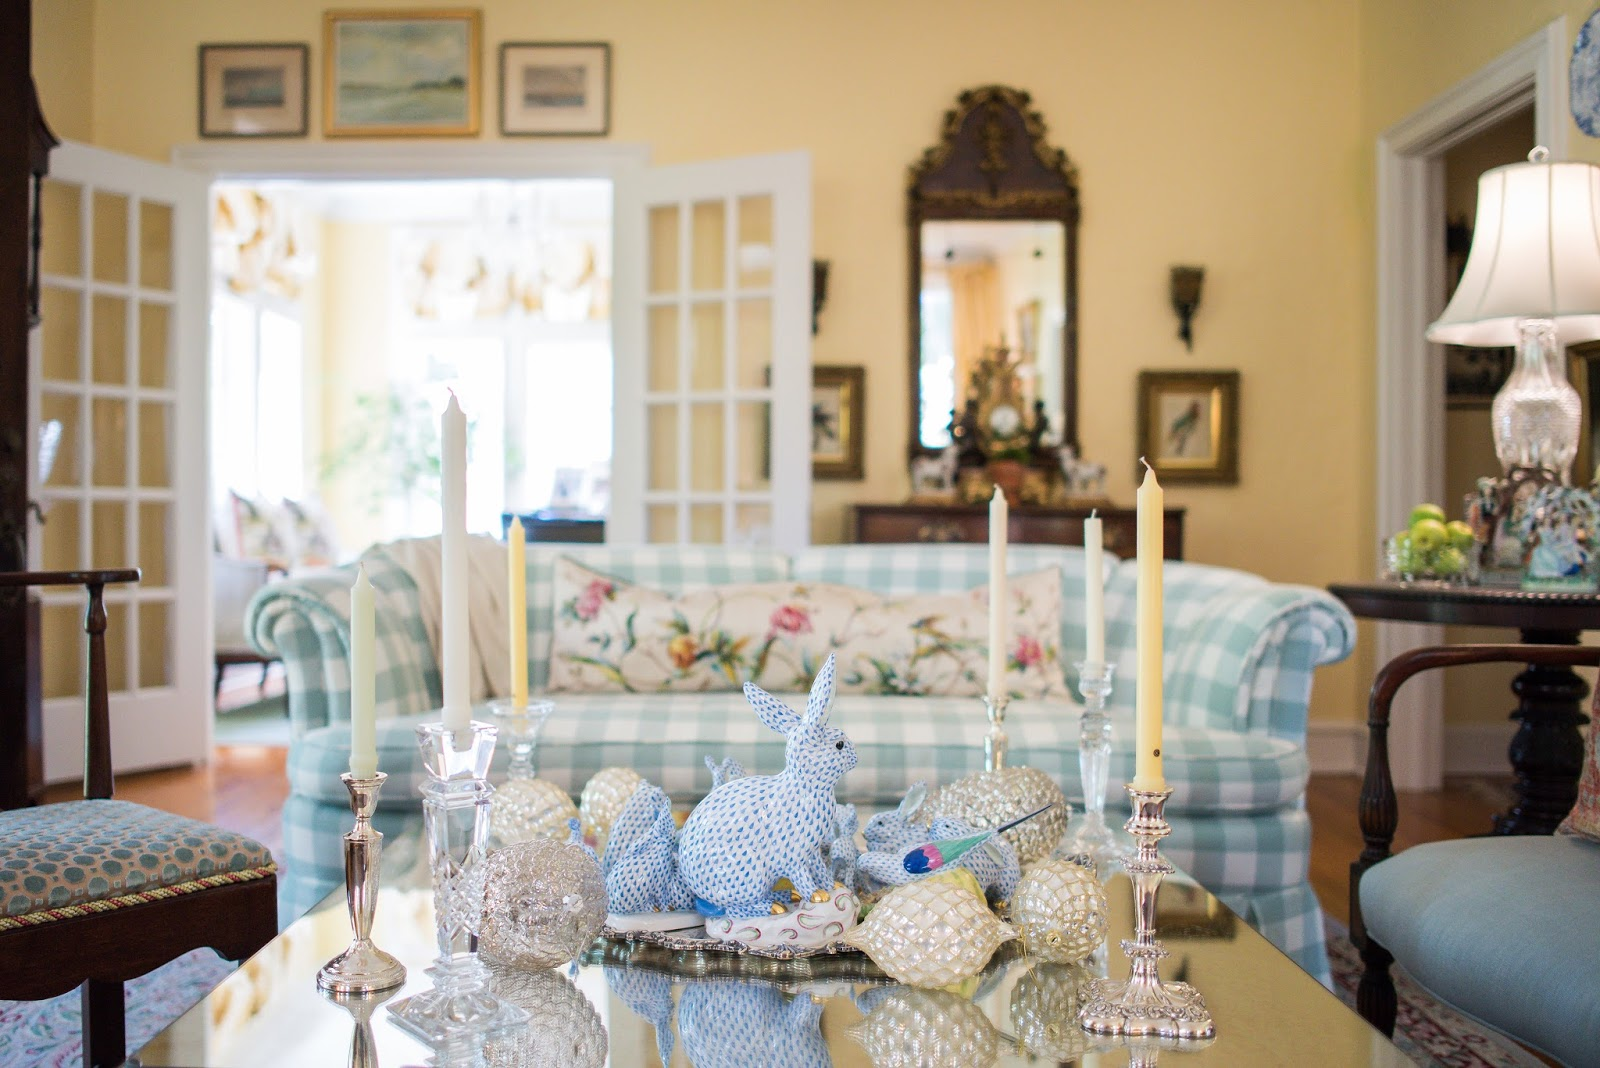 A Classic and Elegant Southern Cottage - The Glam Pad